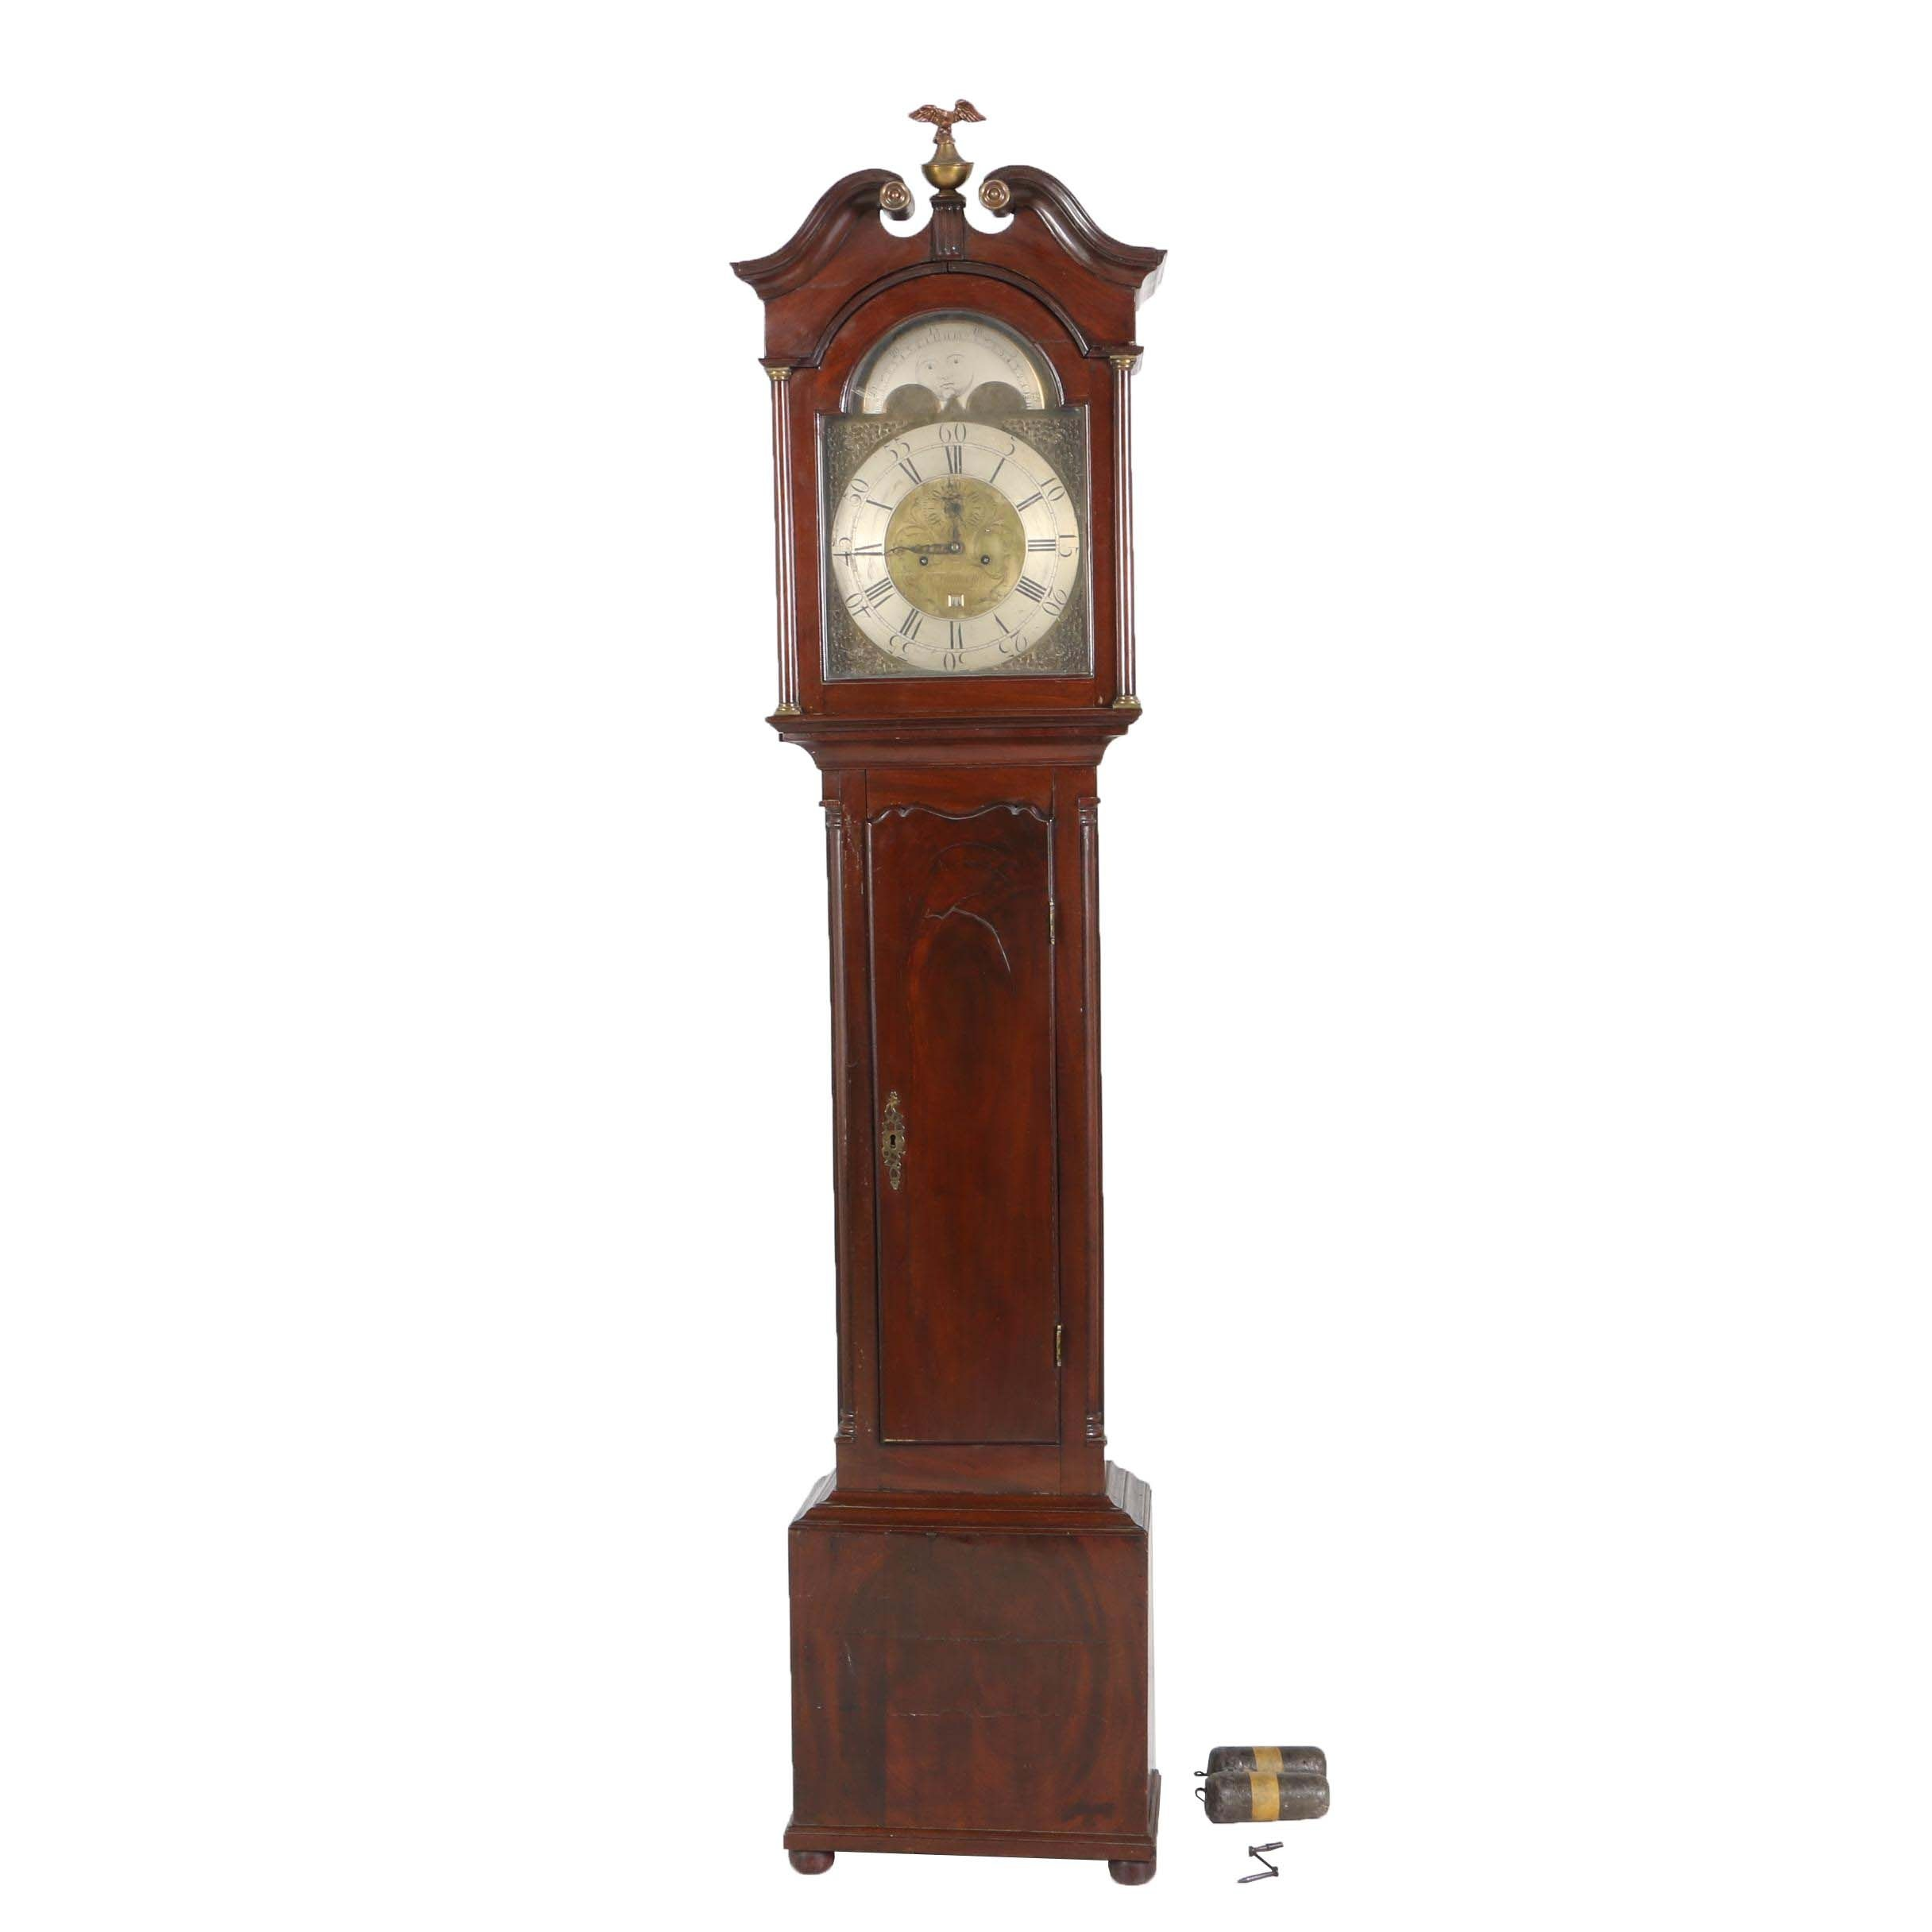 George III Mahogany Tall Case Clock, Robert Townsend, Greenock, Circa 1800